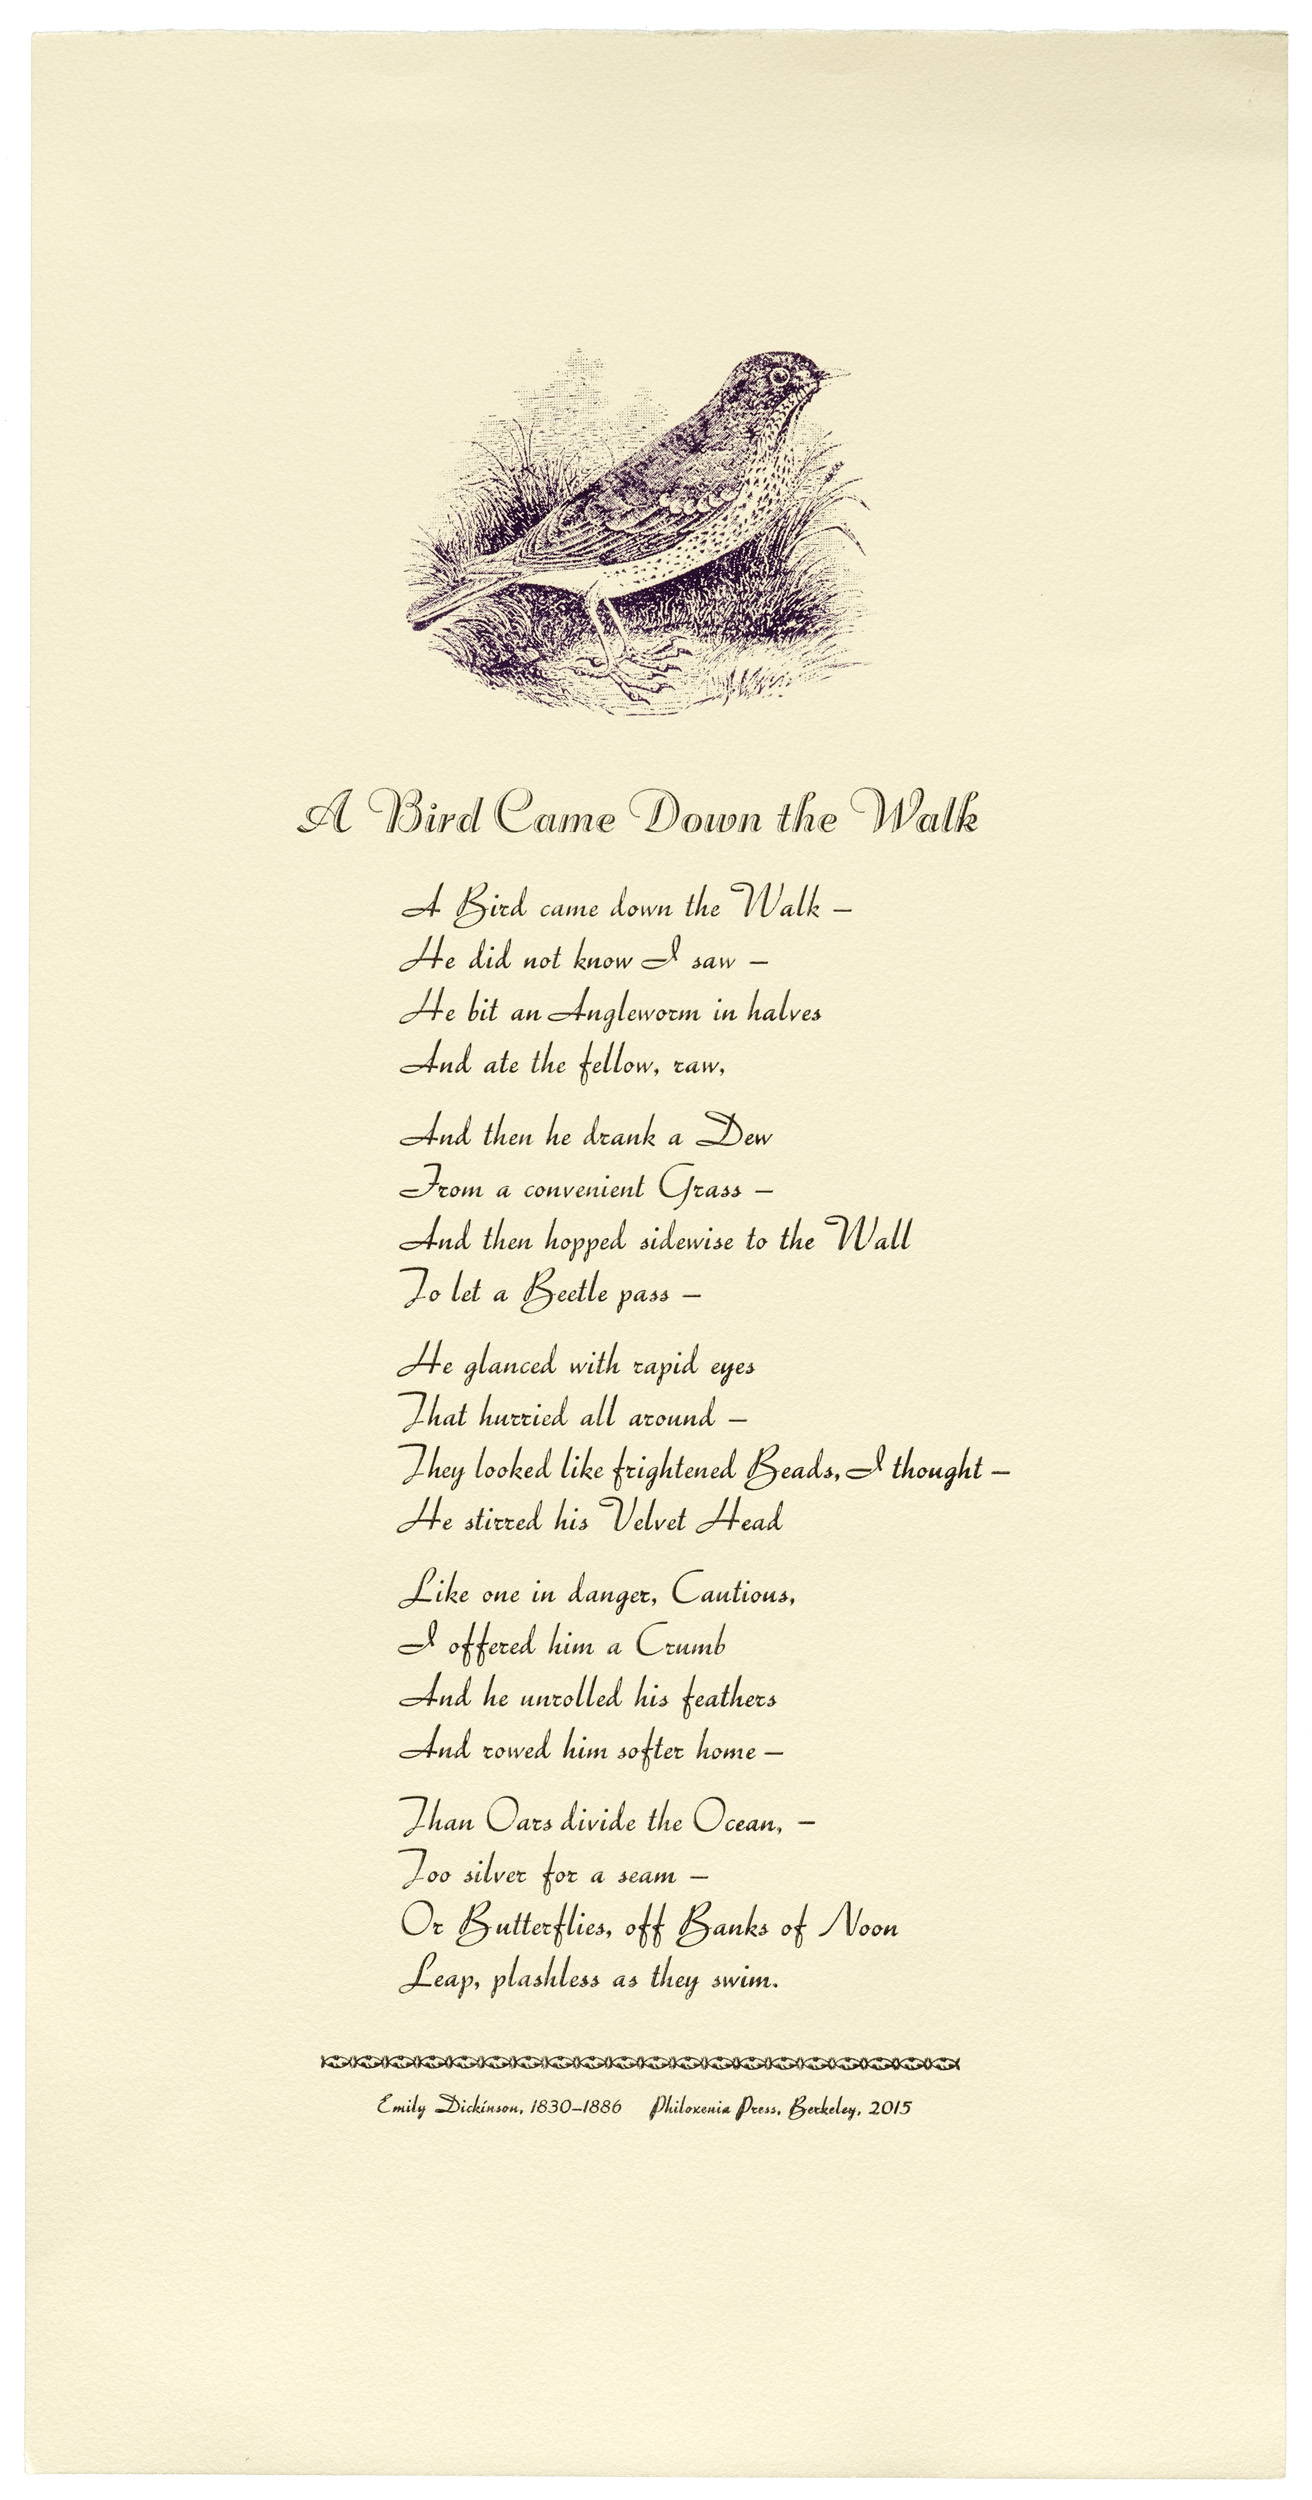 Broadside. Emily Dickinson. A Bird came down the Walk. 24 point Trafton Script & 36 point Donatello Éclair, with an engraving by Thomas Bewick. Size 8.5 x 17.